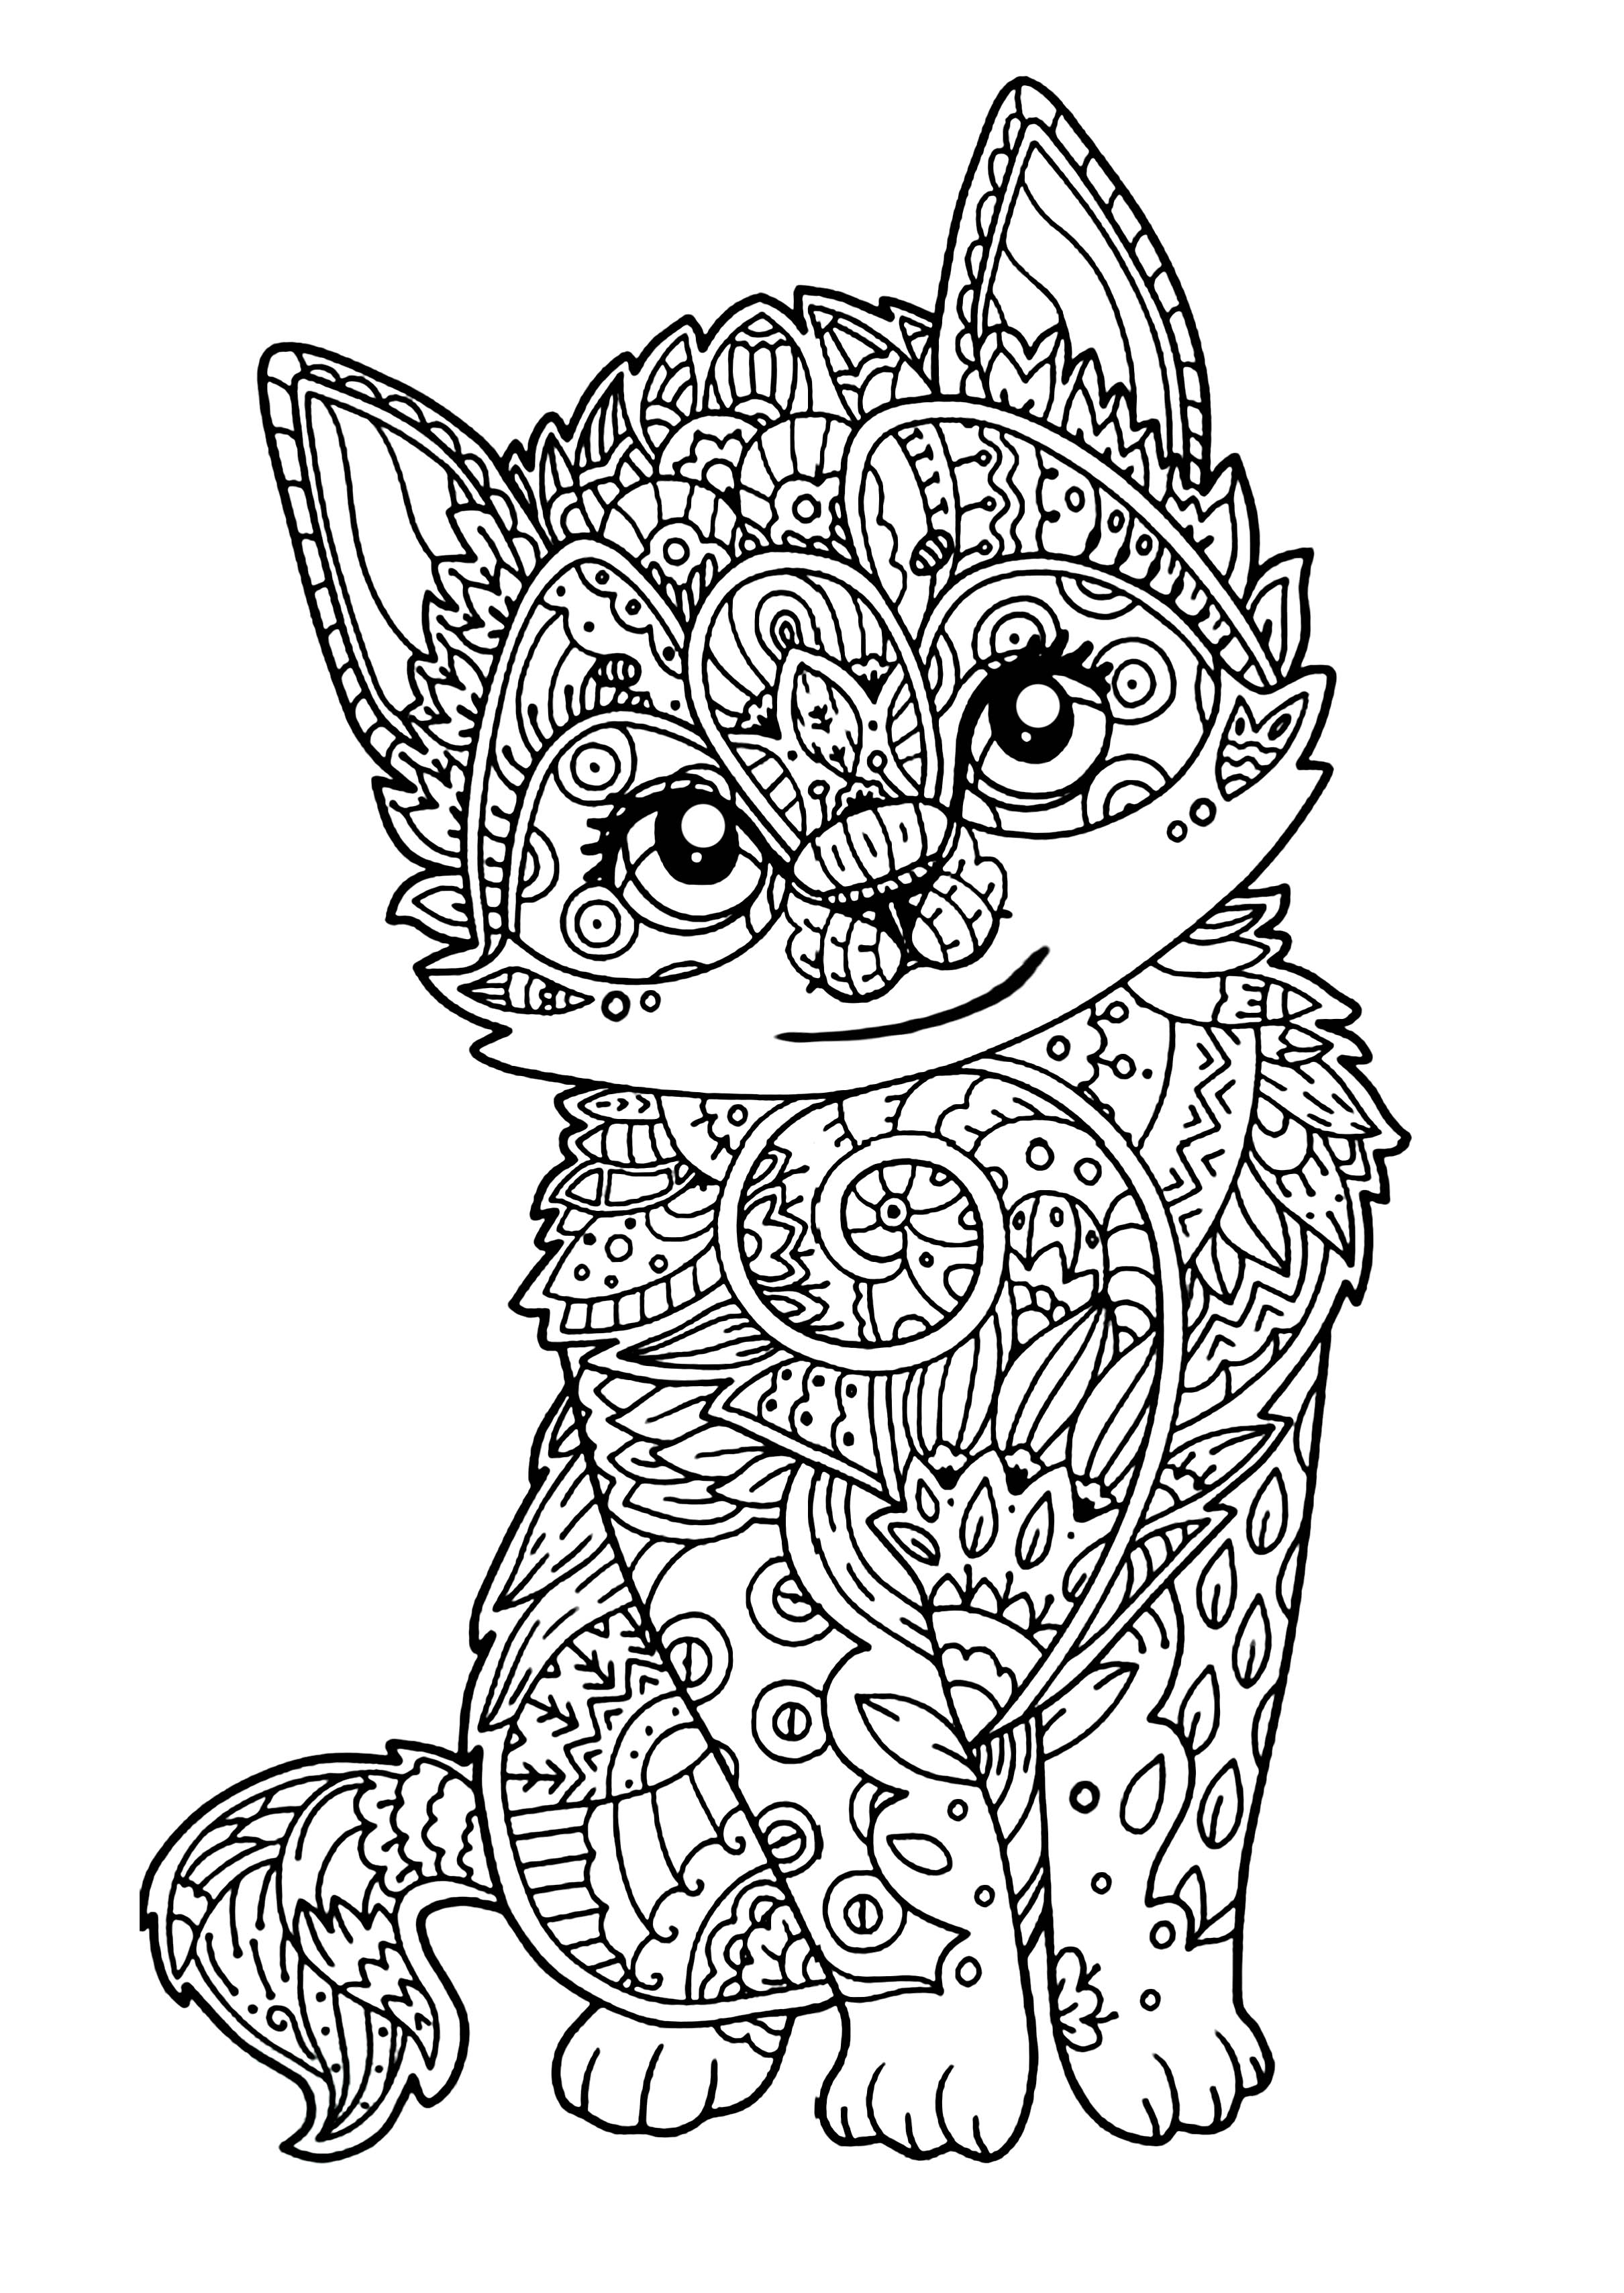 Mignon chaton chats coloriages difficiles pour adultes - Tete de chat a colorier ...